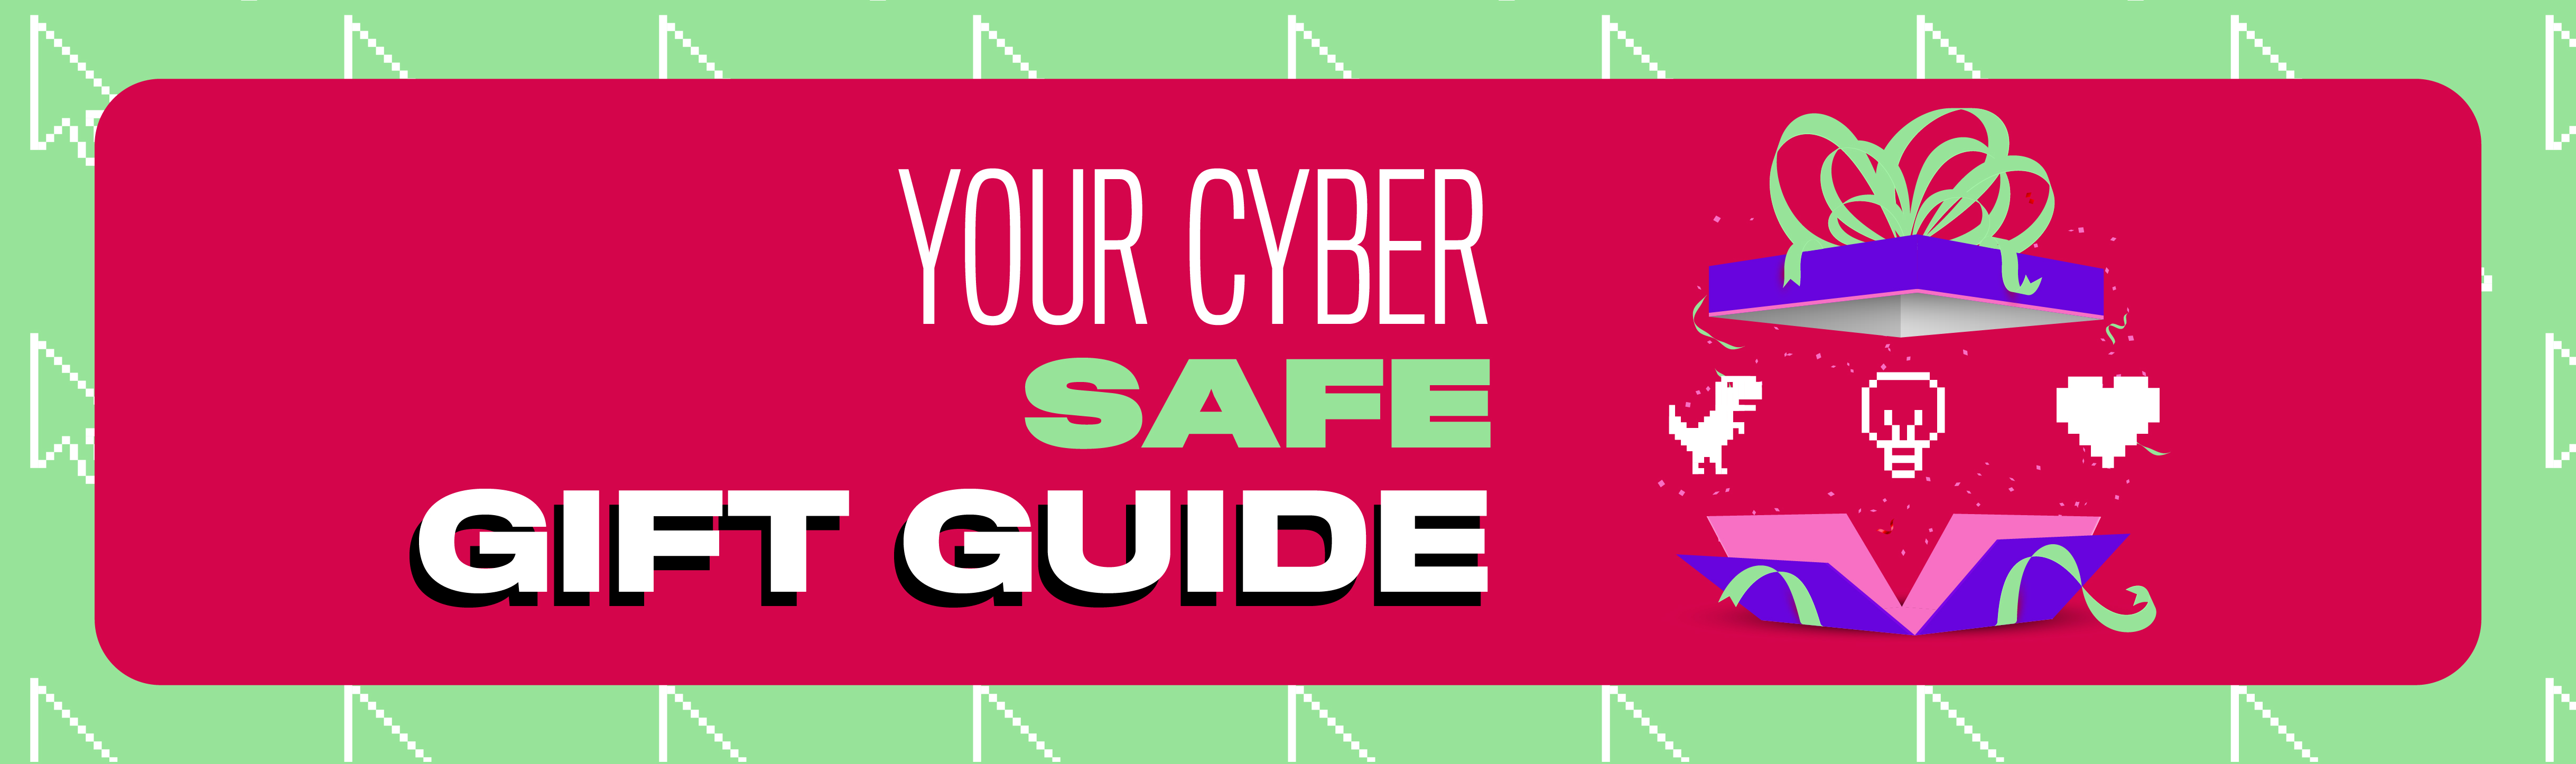 Get Cyber Safe Gift Guide